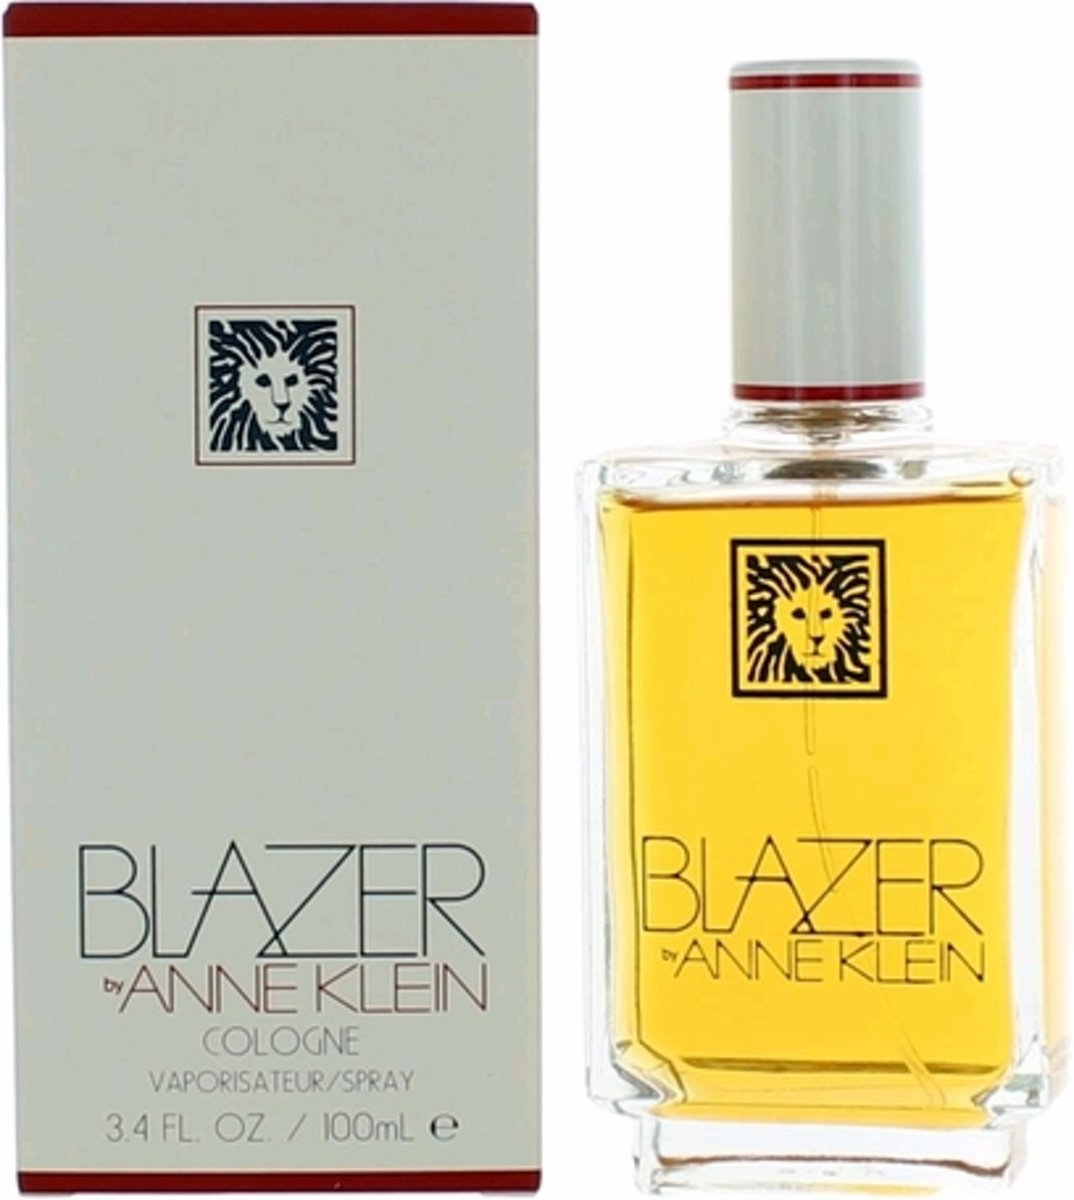 Anne Klein Blazer - Eau de cologne spray - 100 ml